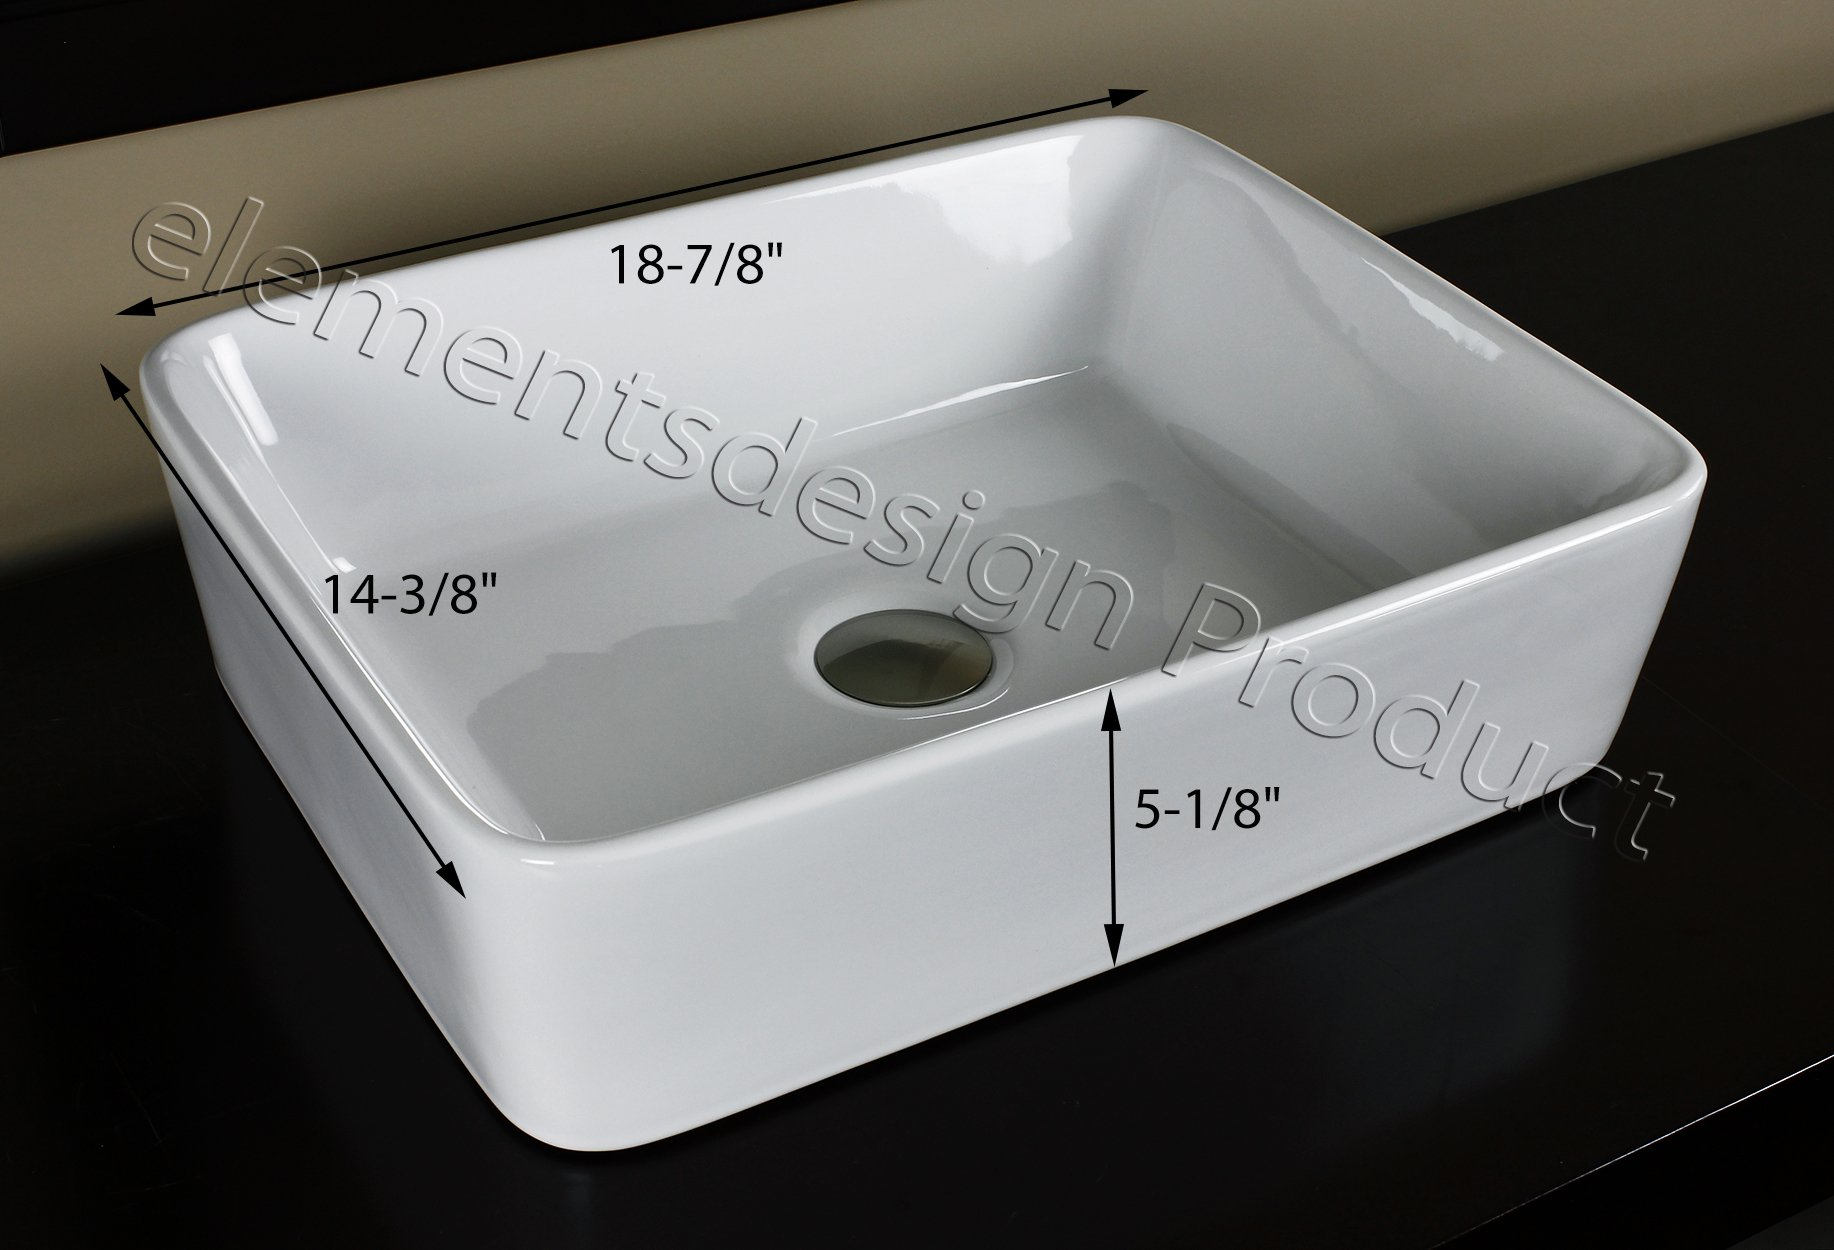 Bathroom Ceramic Porcelain Vessel Vanity Sink 7050L3 combo+ free brushed nickel faucet, Pop Up Drain with no overflow by ELIMAX'S